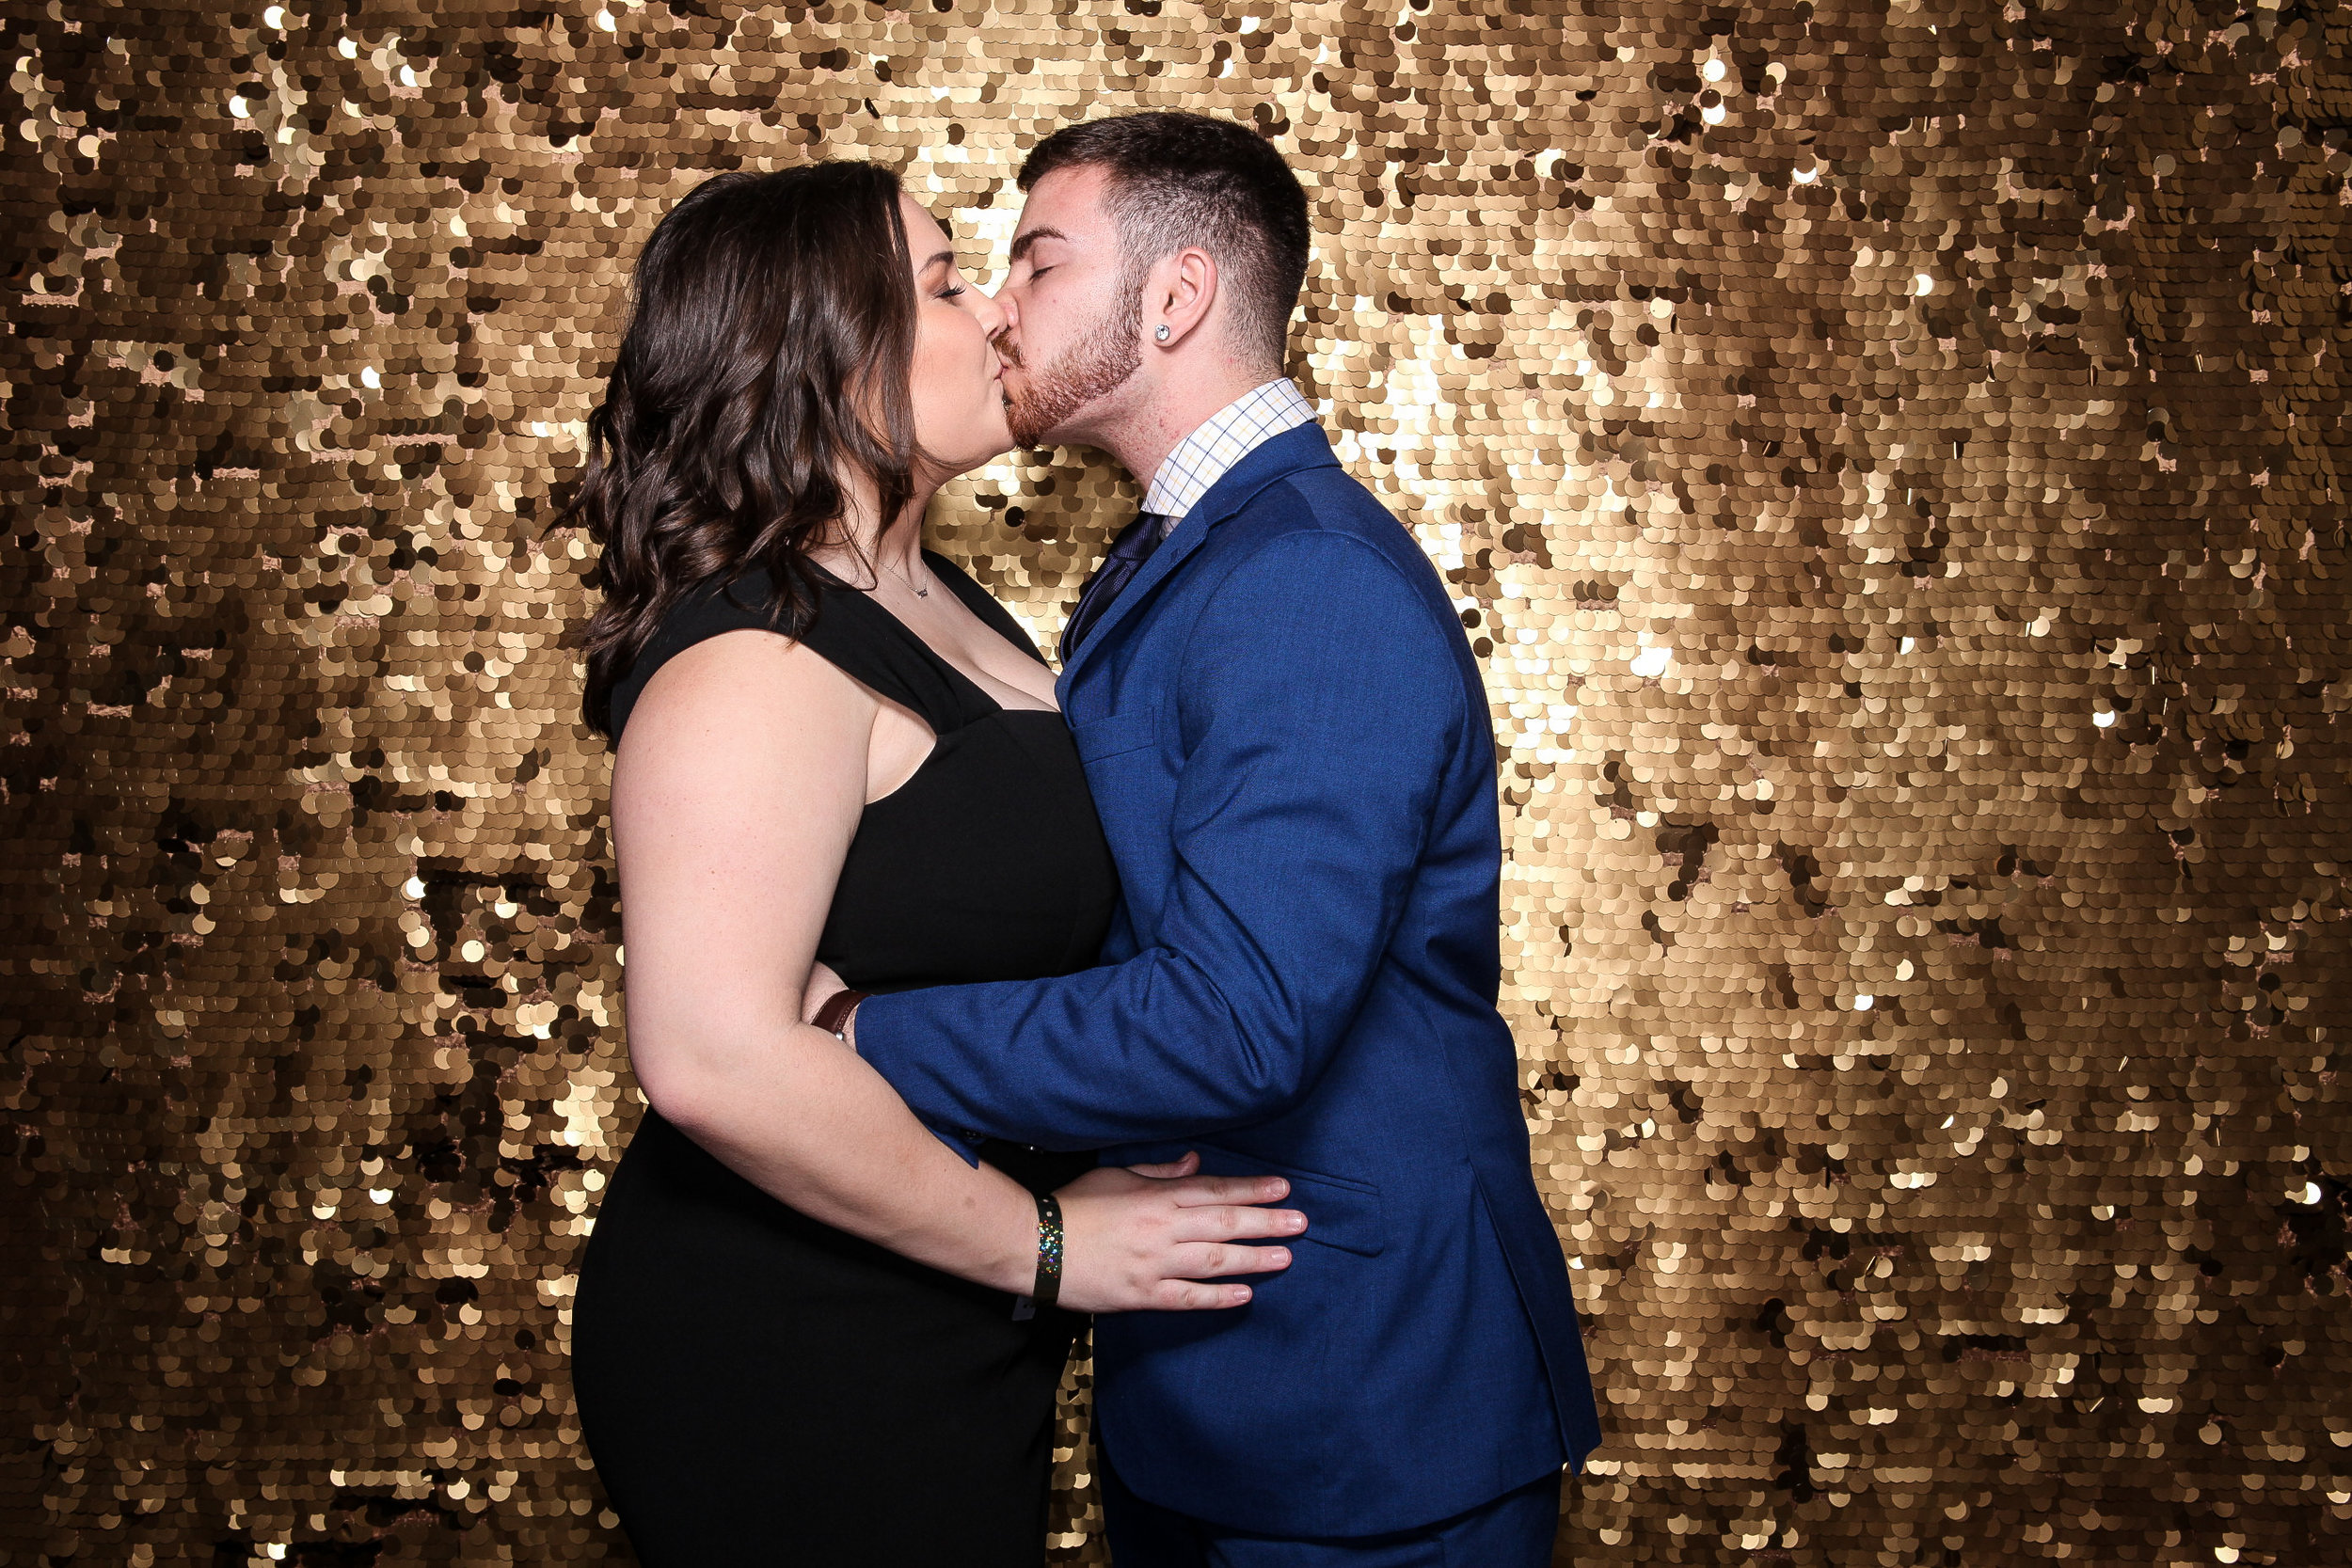 20190503_Adelphi_Senior_Formal-117.jpg